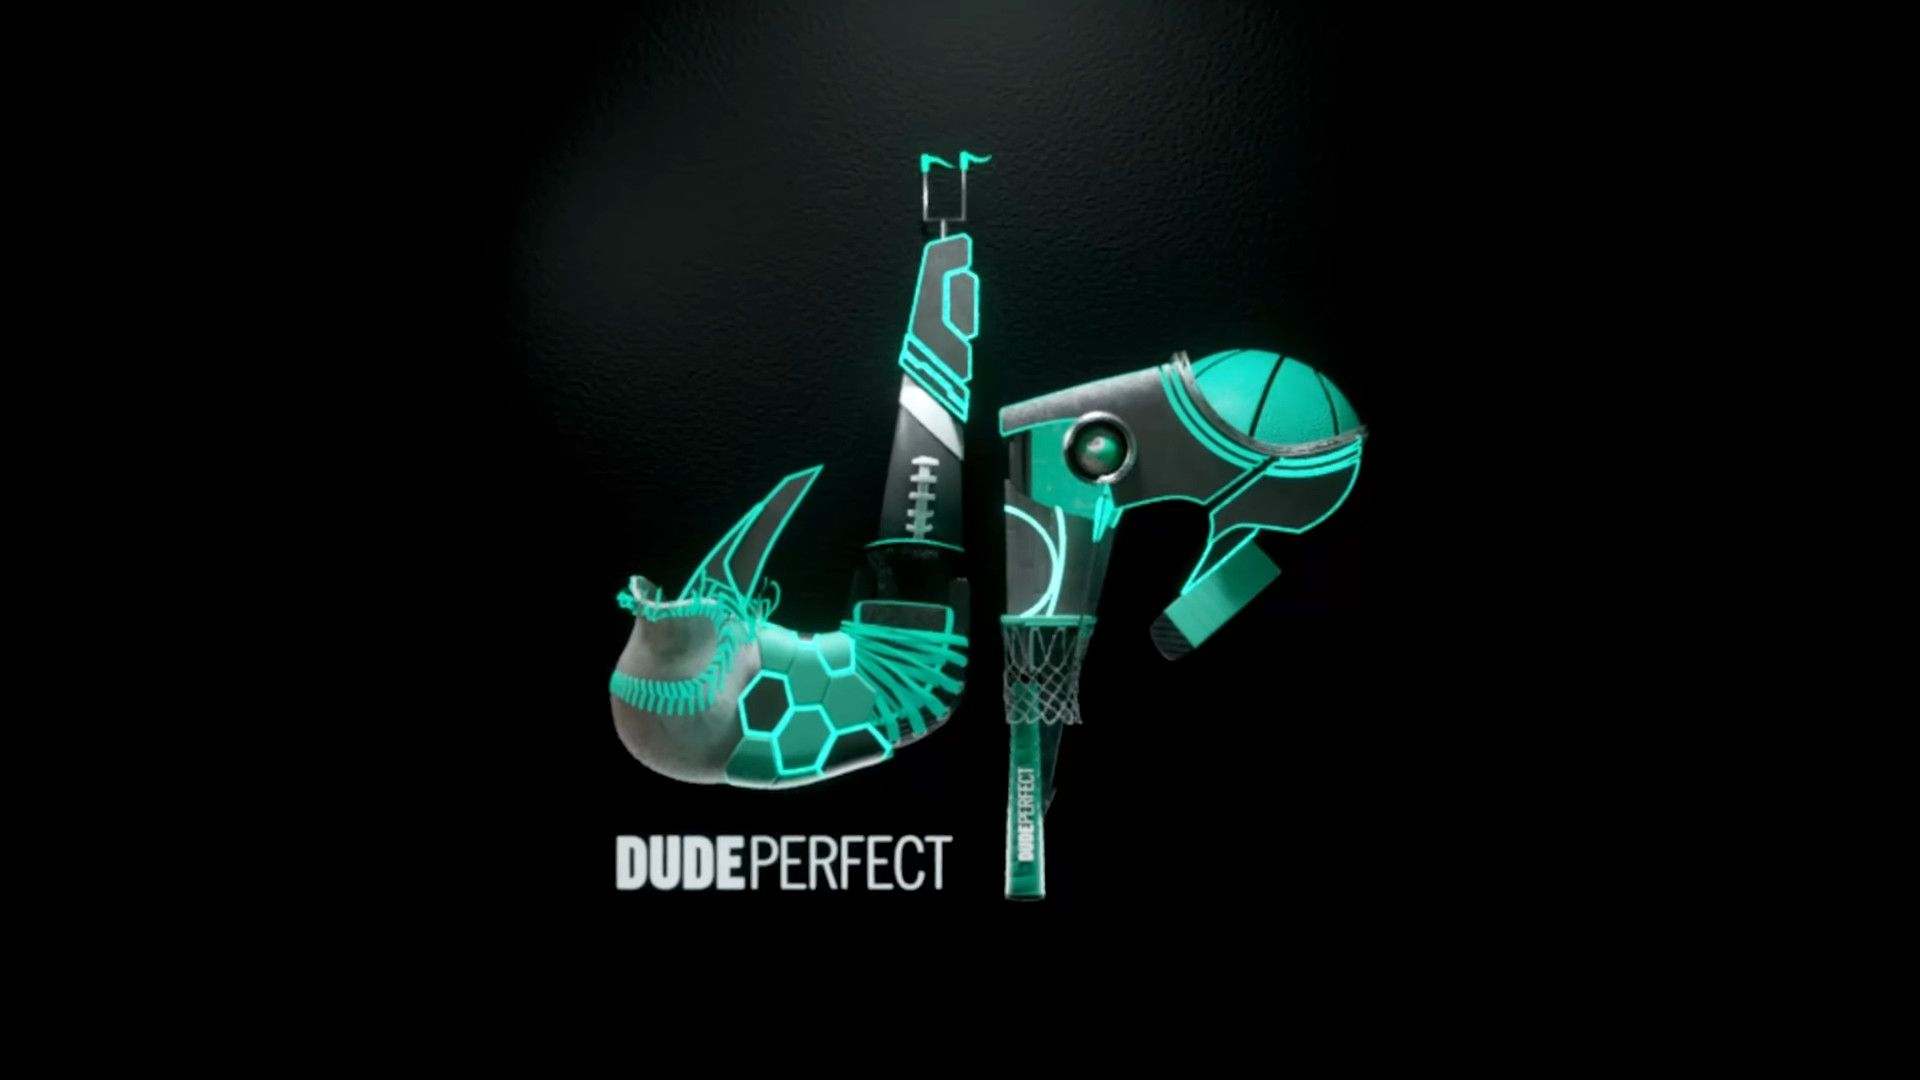 Dude Perfect Wallpapers - Top Free Dude ...